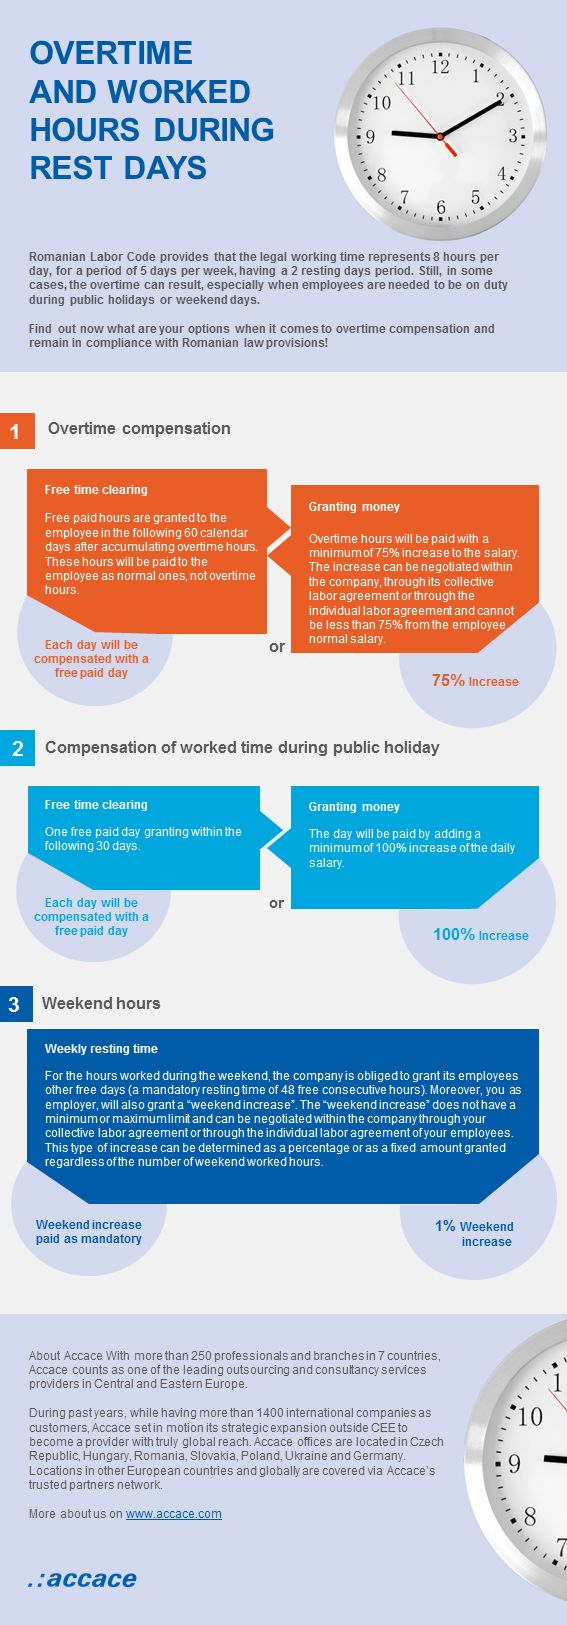 Overtime and worked hours during rest days   Infographic